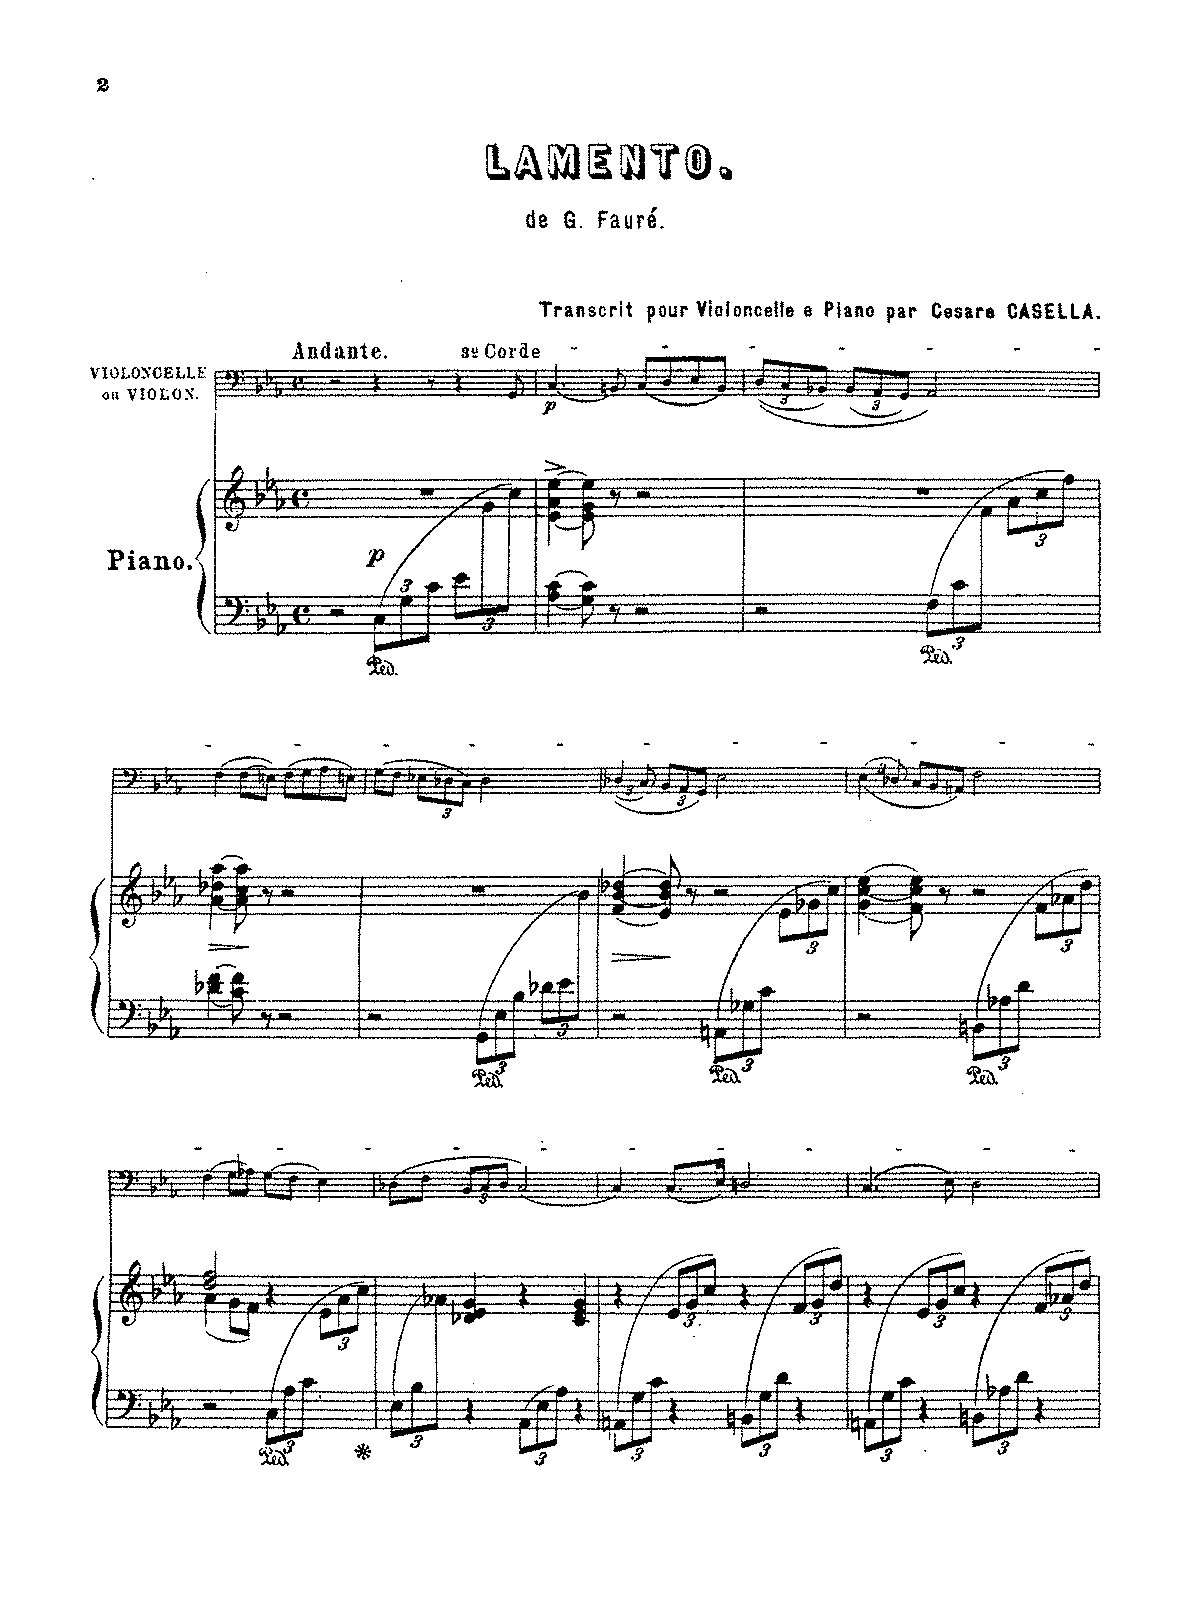 PMLP54586-Fauré - Lamento Op4 (Casella) for cello and piano.pdf